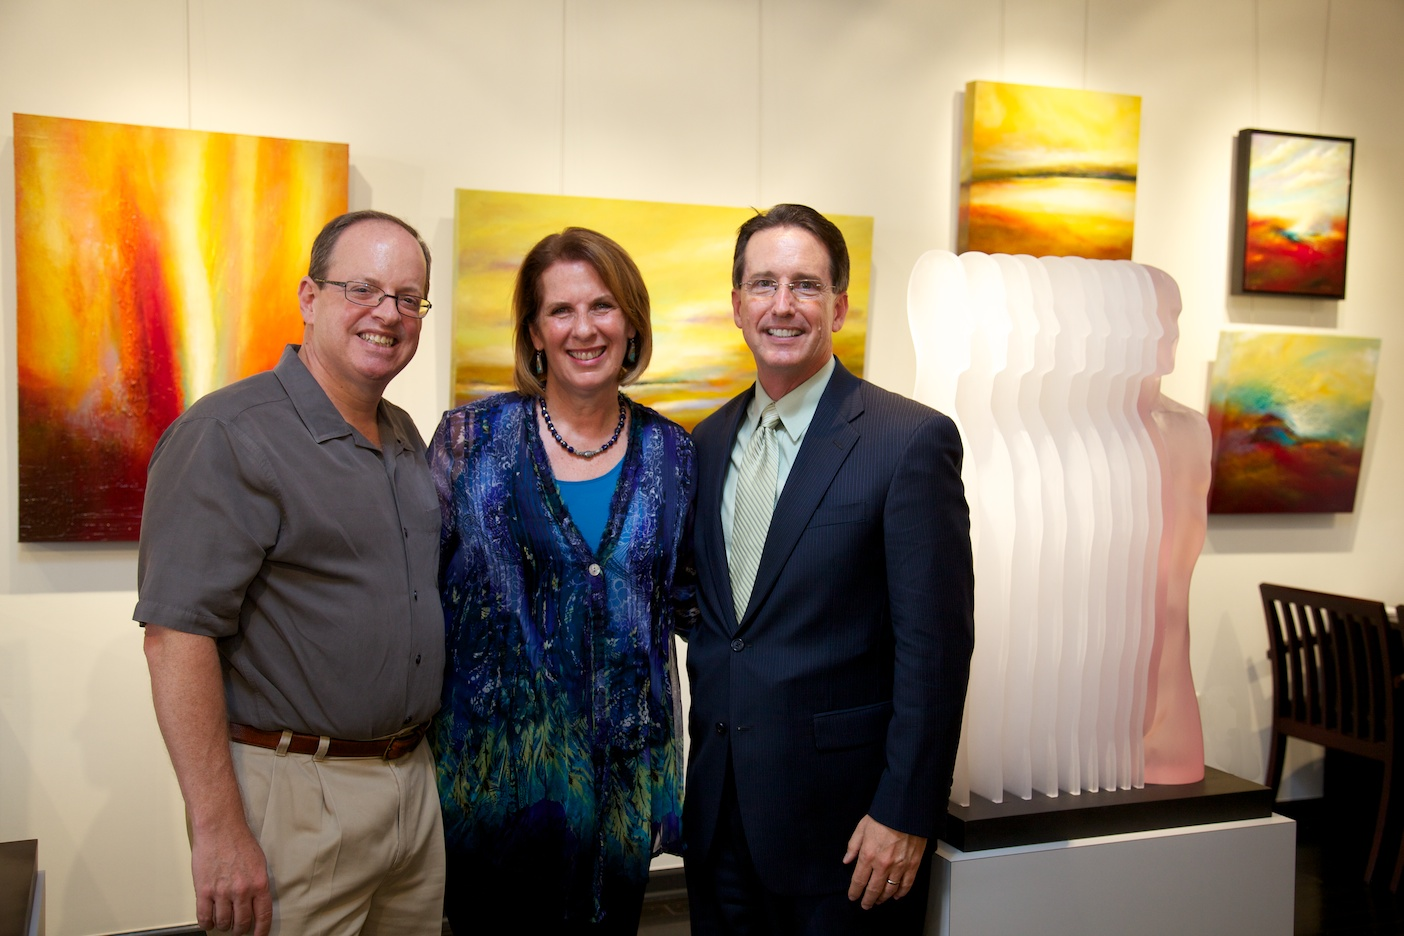 """Gallery chairman, Russell Medford, gallery president, Margaret Offermann, and Director of Philanthropic Initiatives at Mission Foundation, John Locke    Sculpture: """"Fade Away"""" by Leonid Siveriver   Left: """"Living for a Dream"""" by Michael Ethridge"""